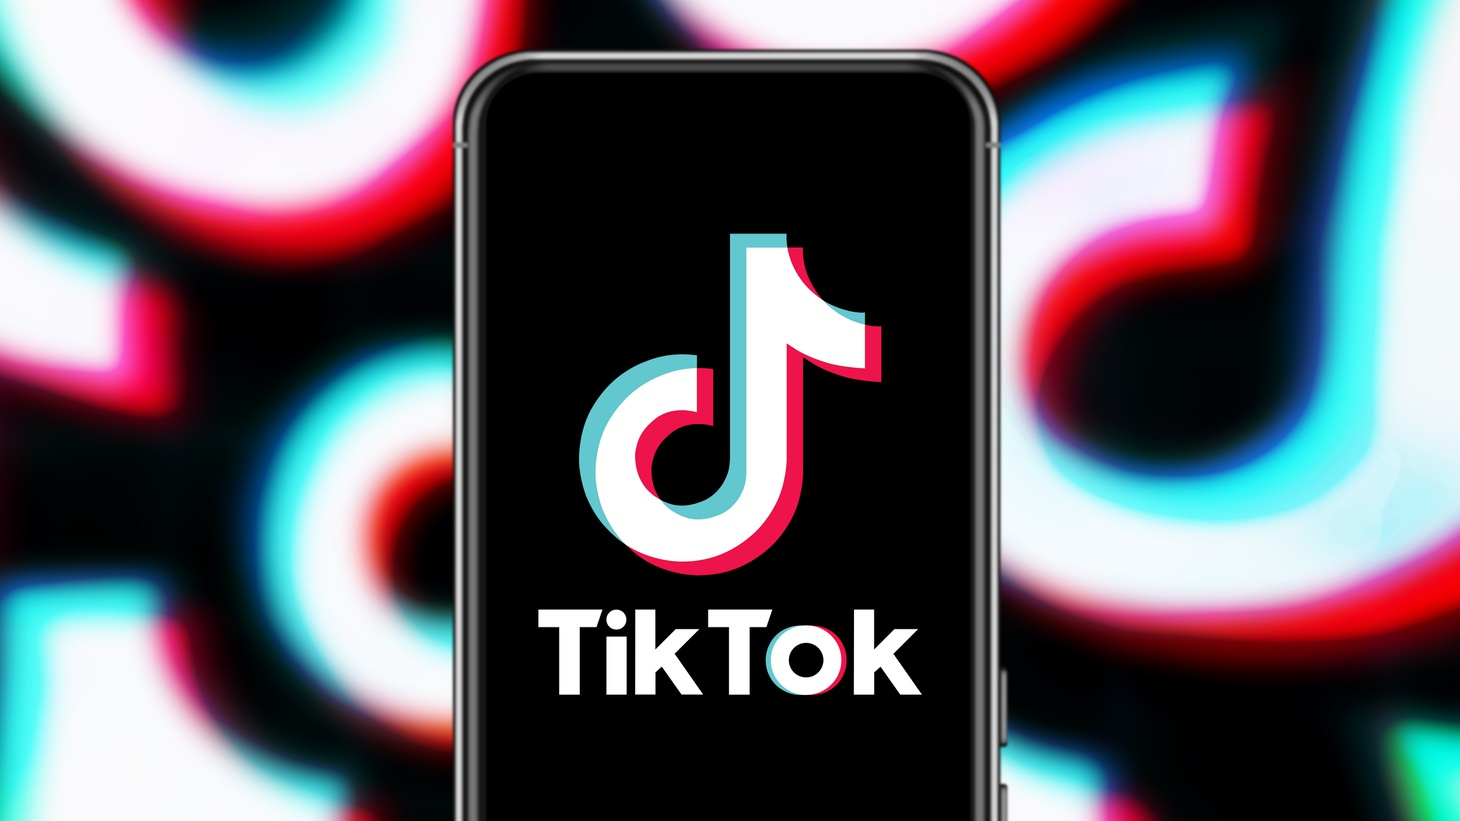 Viral TikTok personalities like Addison Rae and the D'Amelio sisters have crossed over to Hollywood. Can they find success in the greater media landscape?